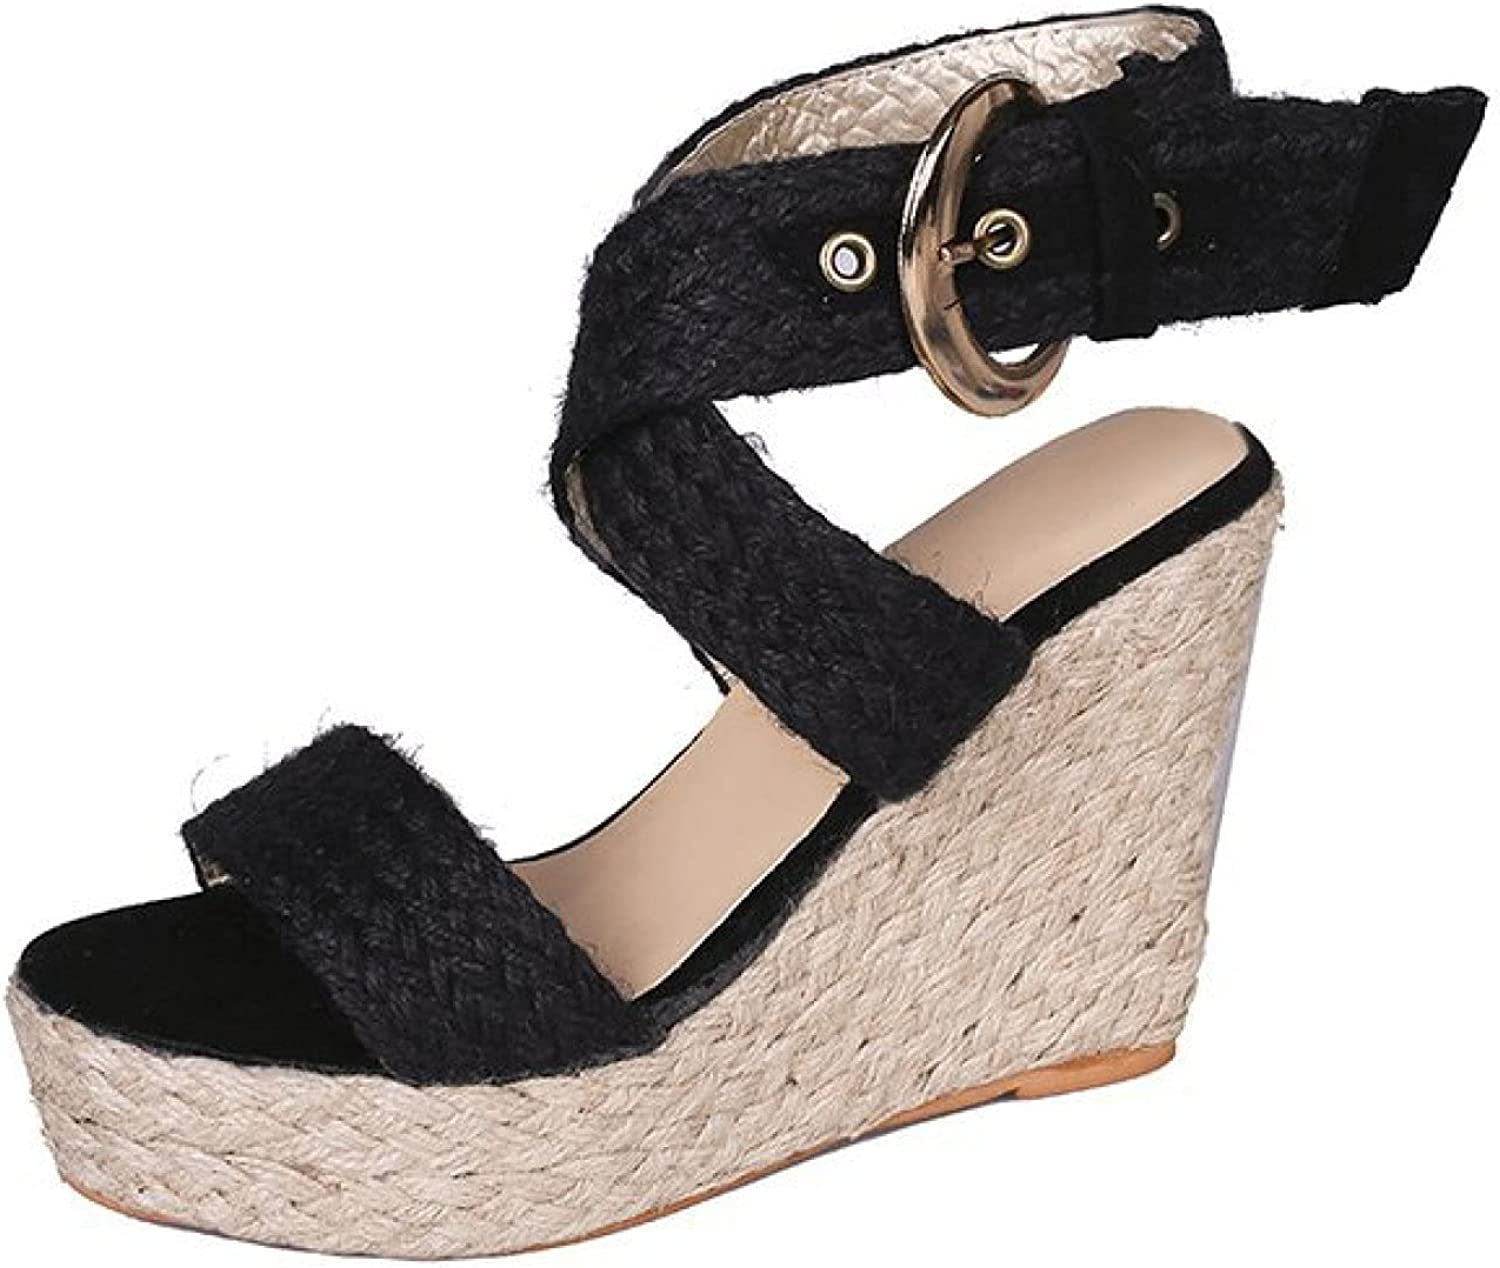 Women's Max 65% OFF Bohemia Wedge Sandals Beach Ankle St Toe Adjustable Peep Lowest price challenge